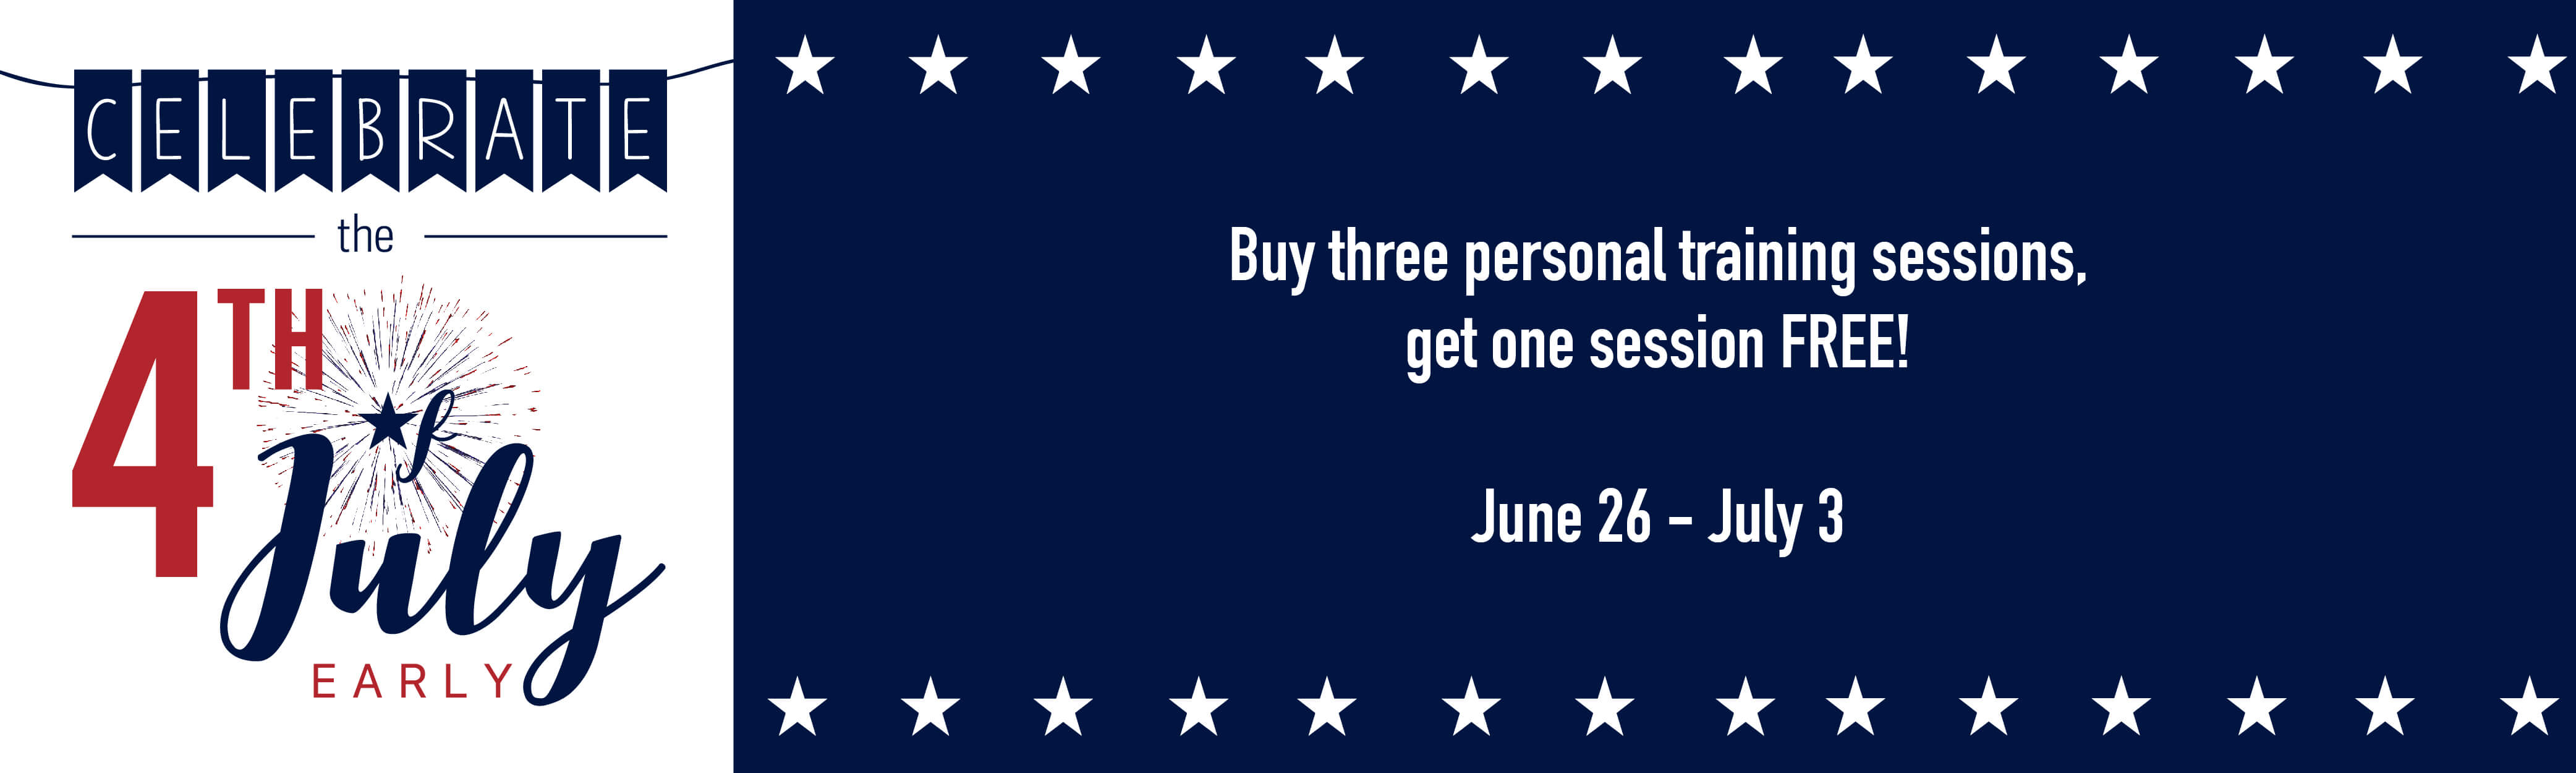 Notre Dame Recsports 4th Of July Personal Training Promo 2016 2016 Featured Image